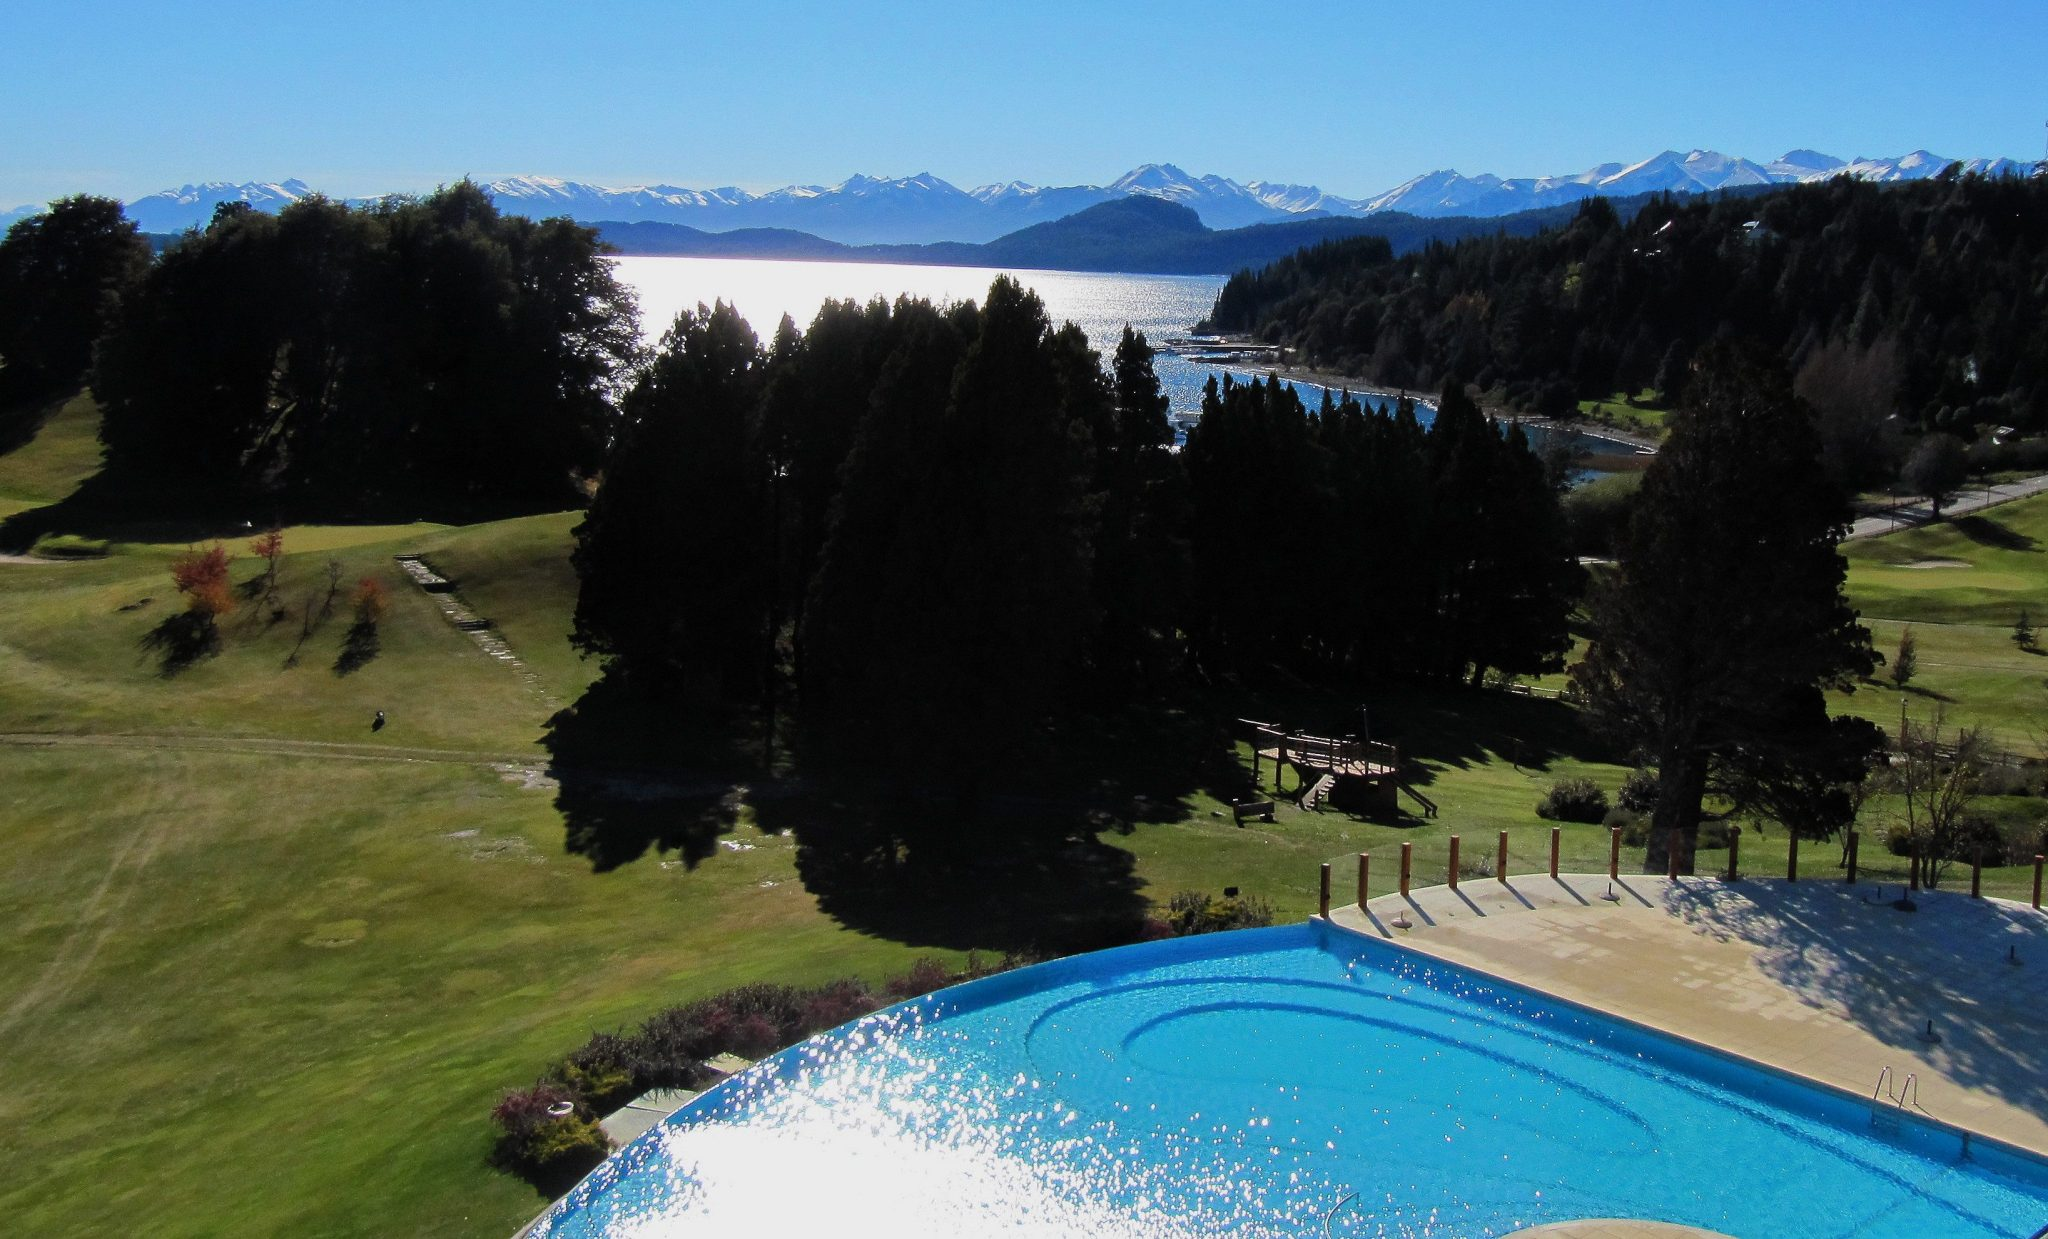 Thumbnail Accommodaties Argentinie Bariloche 1 e1500024540158 - Argentinië